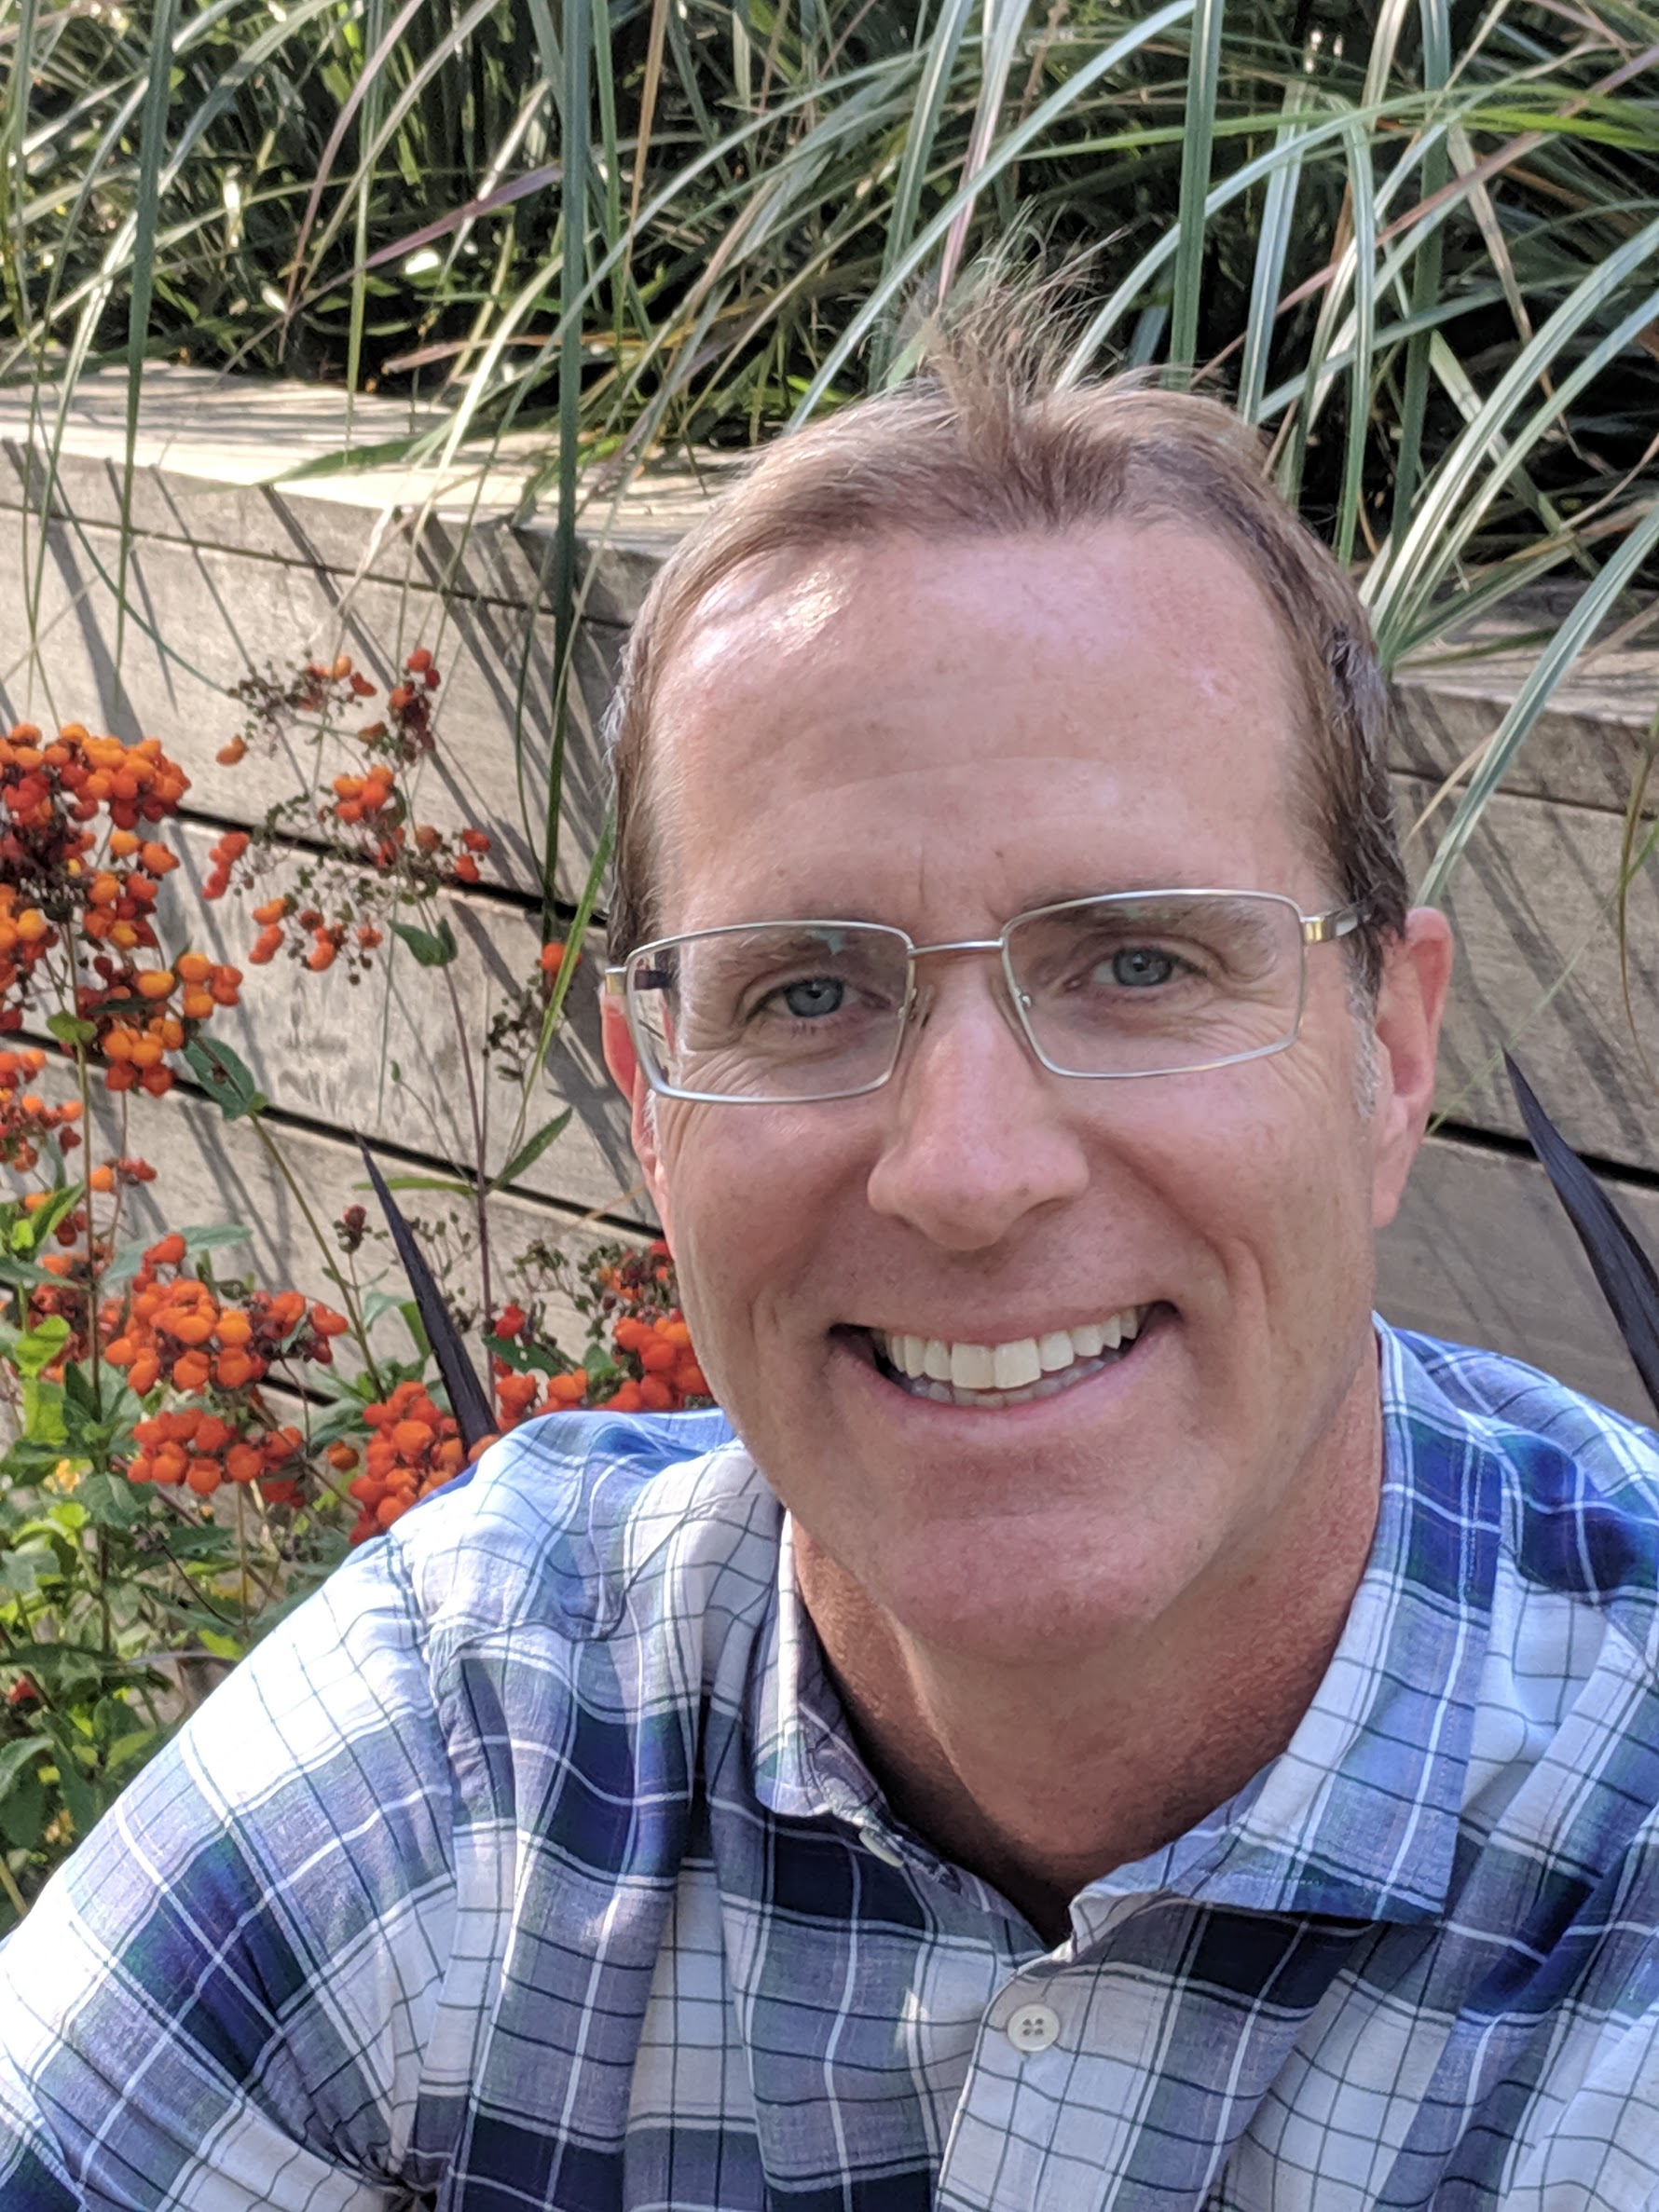 Christopher Bernschein, MA, AMFT, APCC - San Francisco Couples Therapist and Sex Therapist